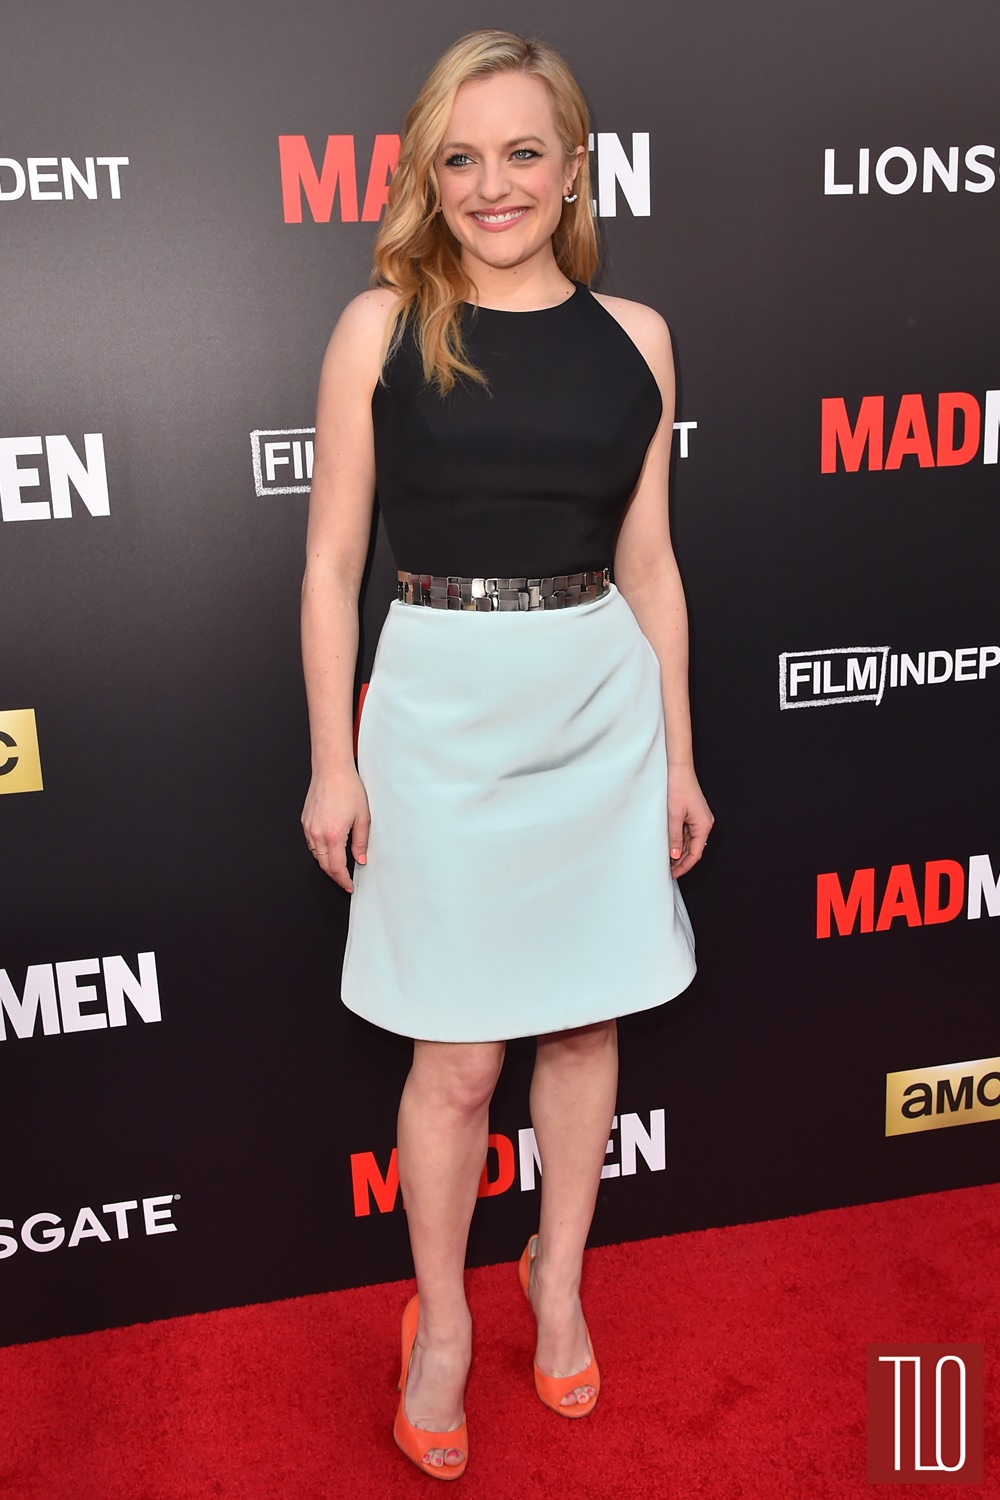 1-Mad-Men-Live-Read-Event-Red-Carpet-Rundown-Fashion-Tom-Lorenzo-Site-TLO-Elisabeth Moss